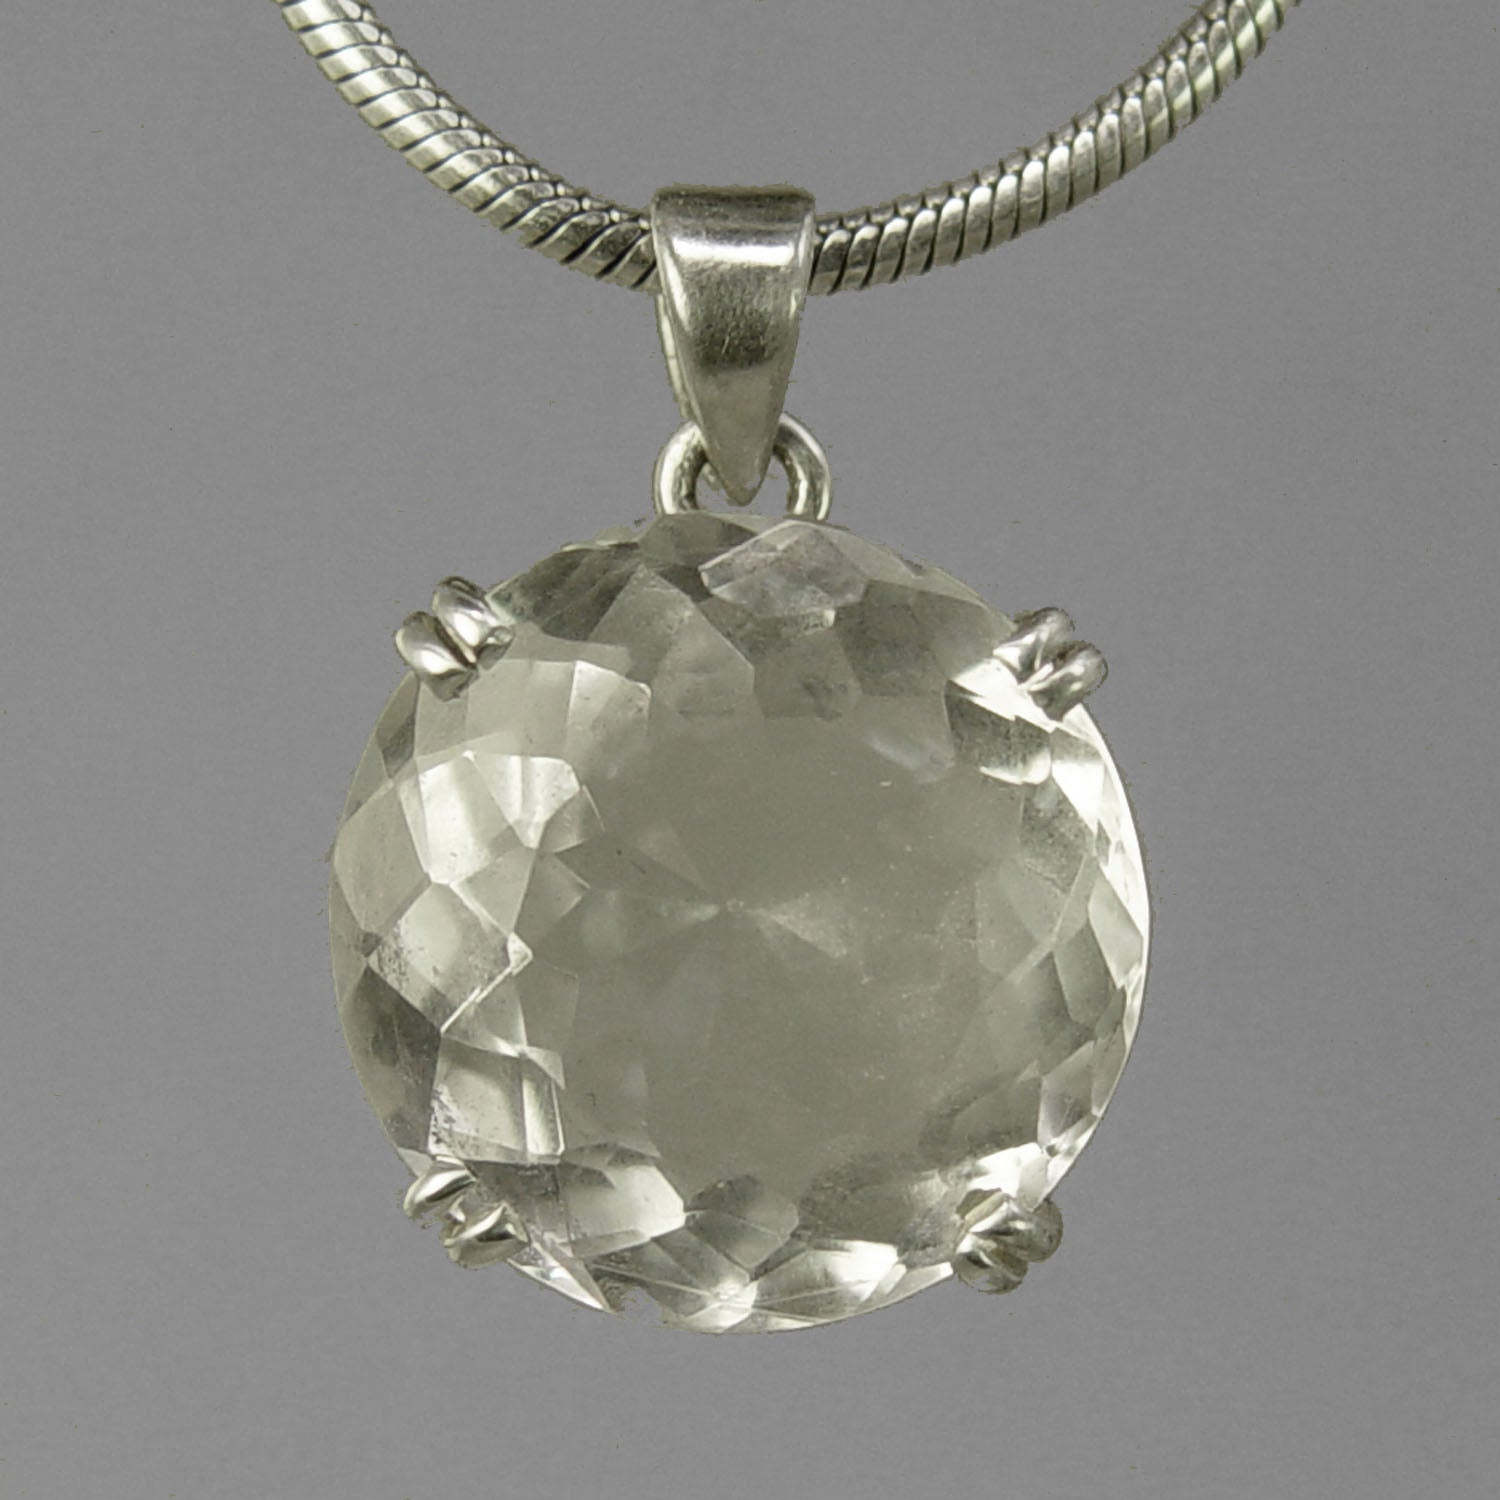 Crystal Quartz 21 ct Round Prong Set Sterling Silver Pendant